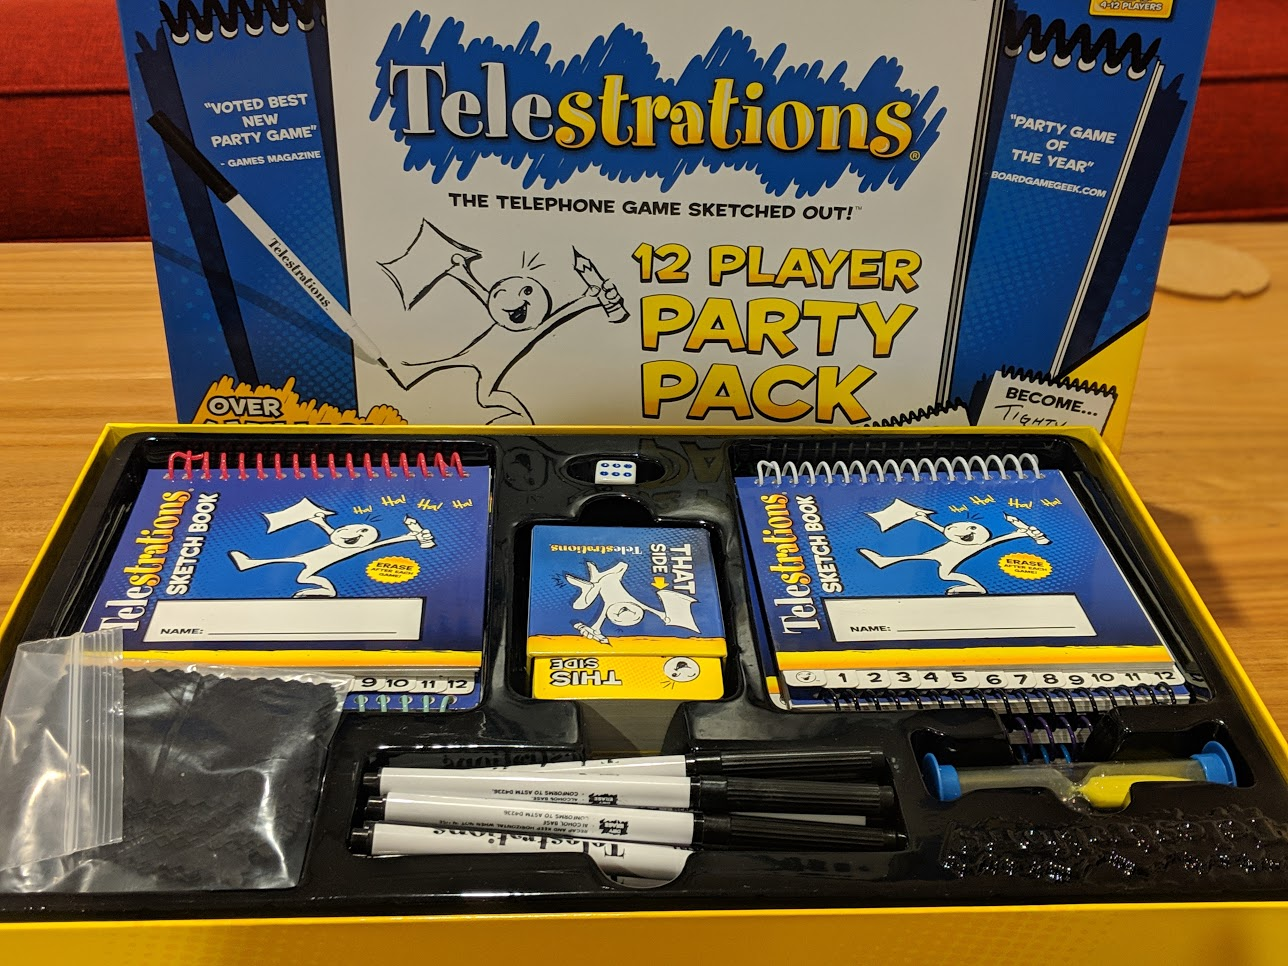 Everything you get in Telestrations 12 Player Party Pack. Including pens, sketch books, timers, and cloths.